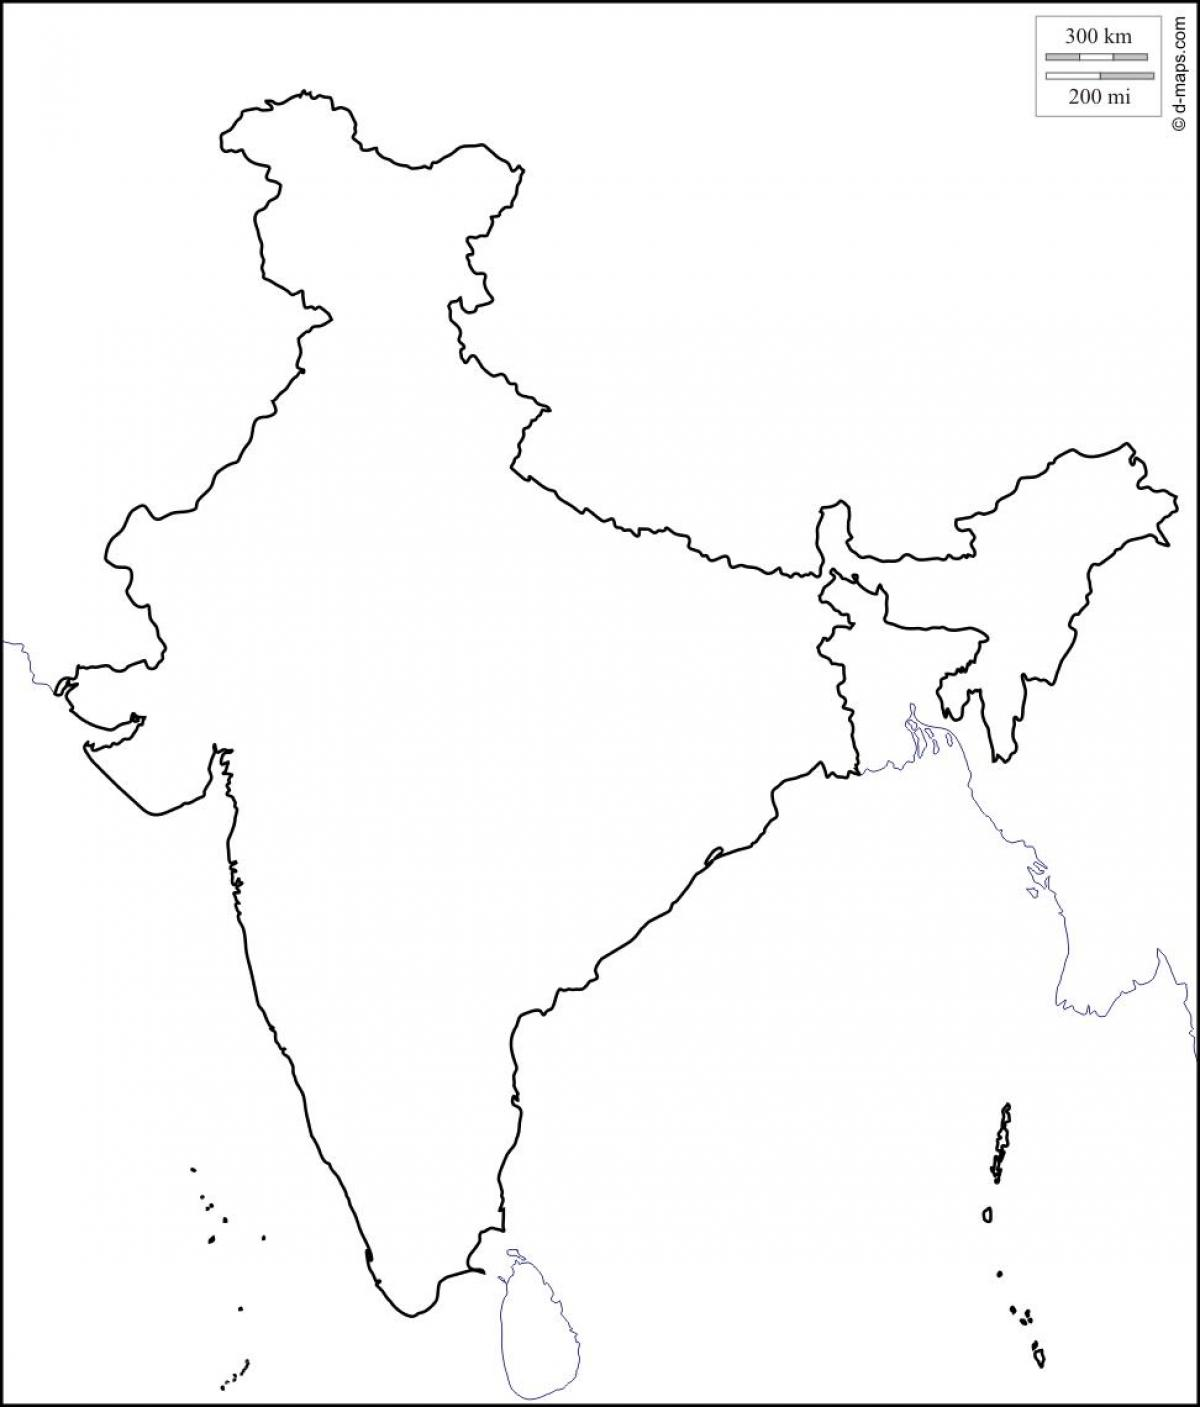 1200x1407 Fileindialocatormapblanksvg Wikipedia. Printable Blank Map